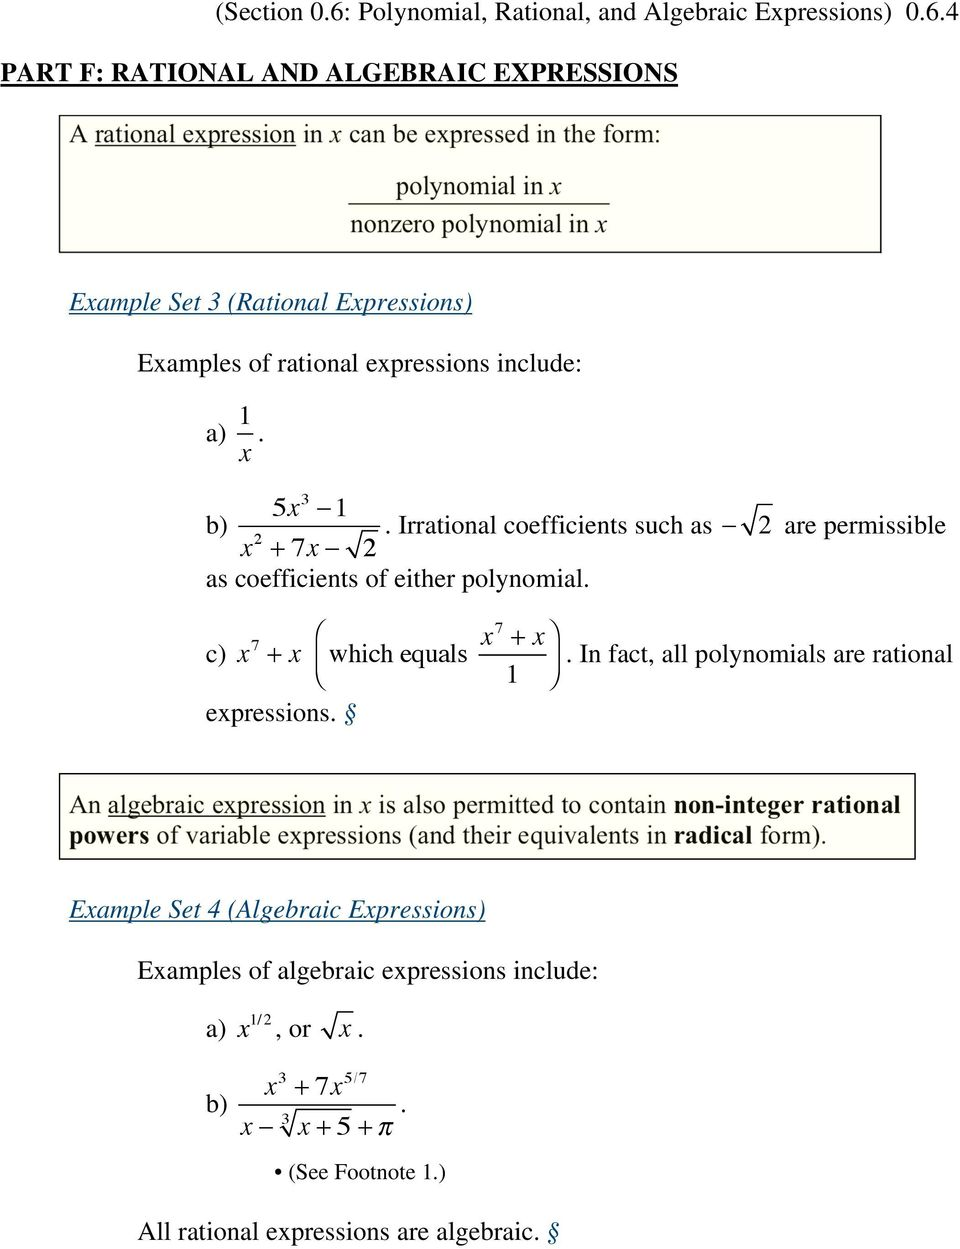 4 PART F: RATIONAL AND ALGEBRAIC EXPRESSIONS A rational expression in x can be expressed in the form: polynomial in x nonzero polynomial in x Example Set 3 (Rational Expressions) Examples of rational